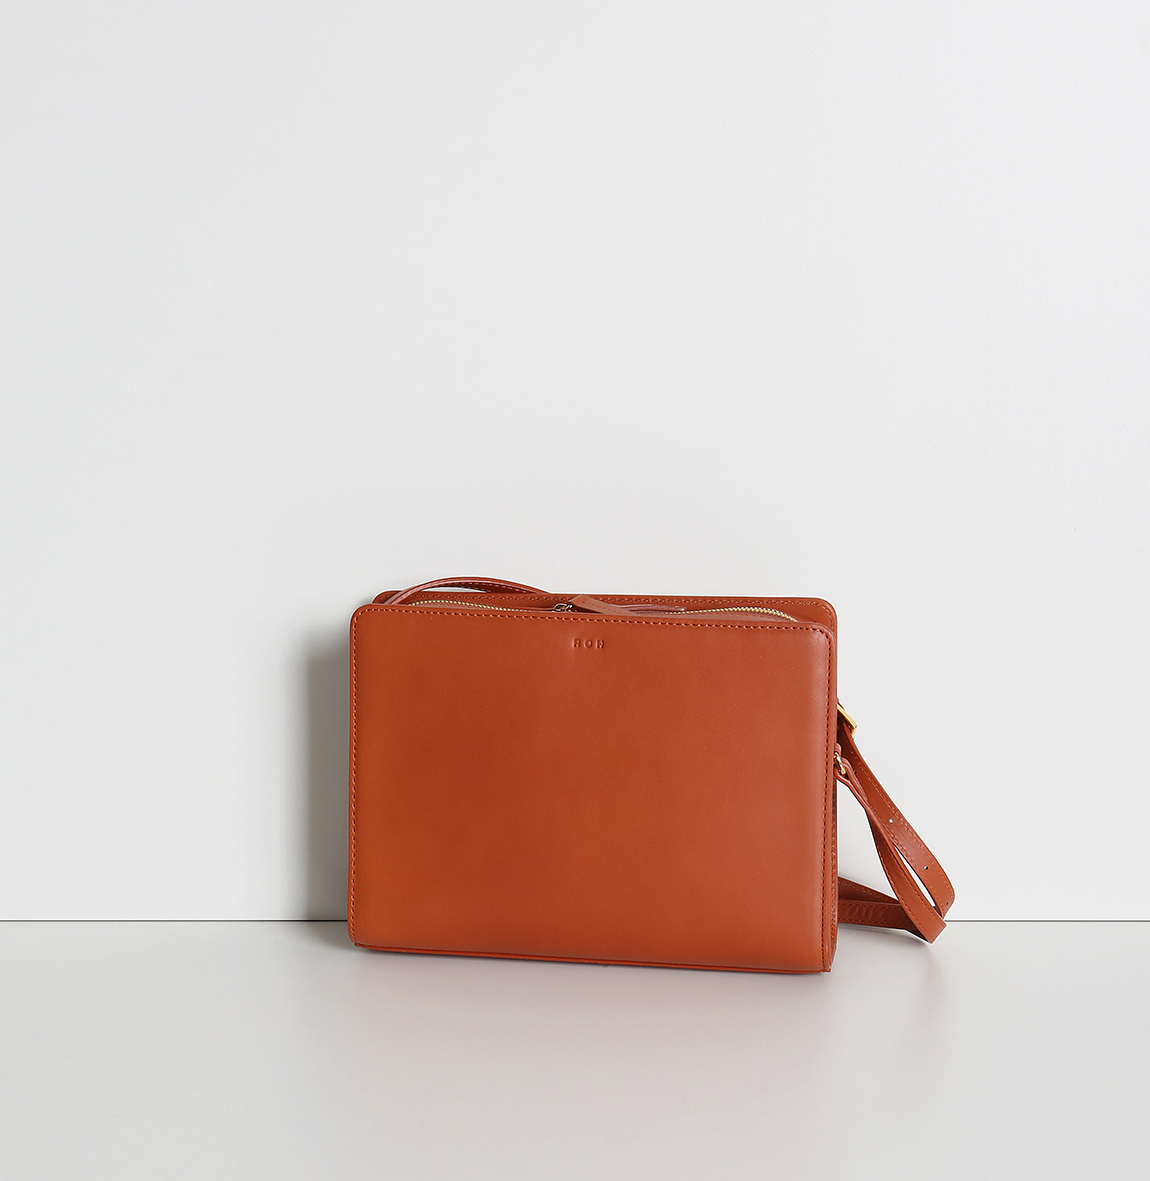 Squarebag Copper